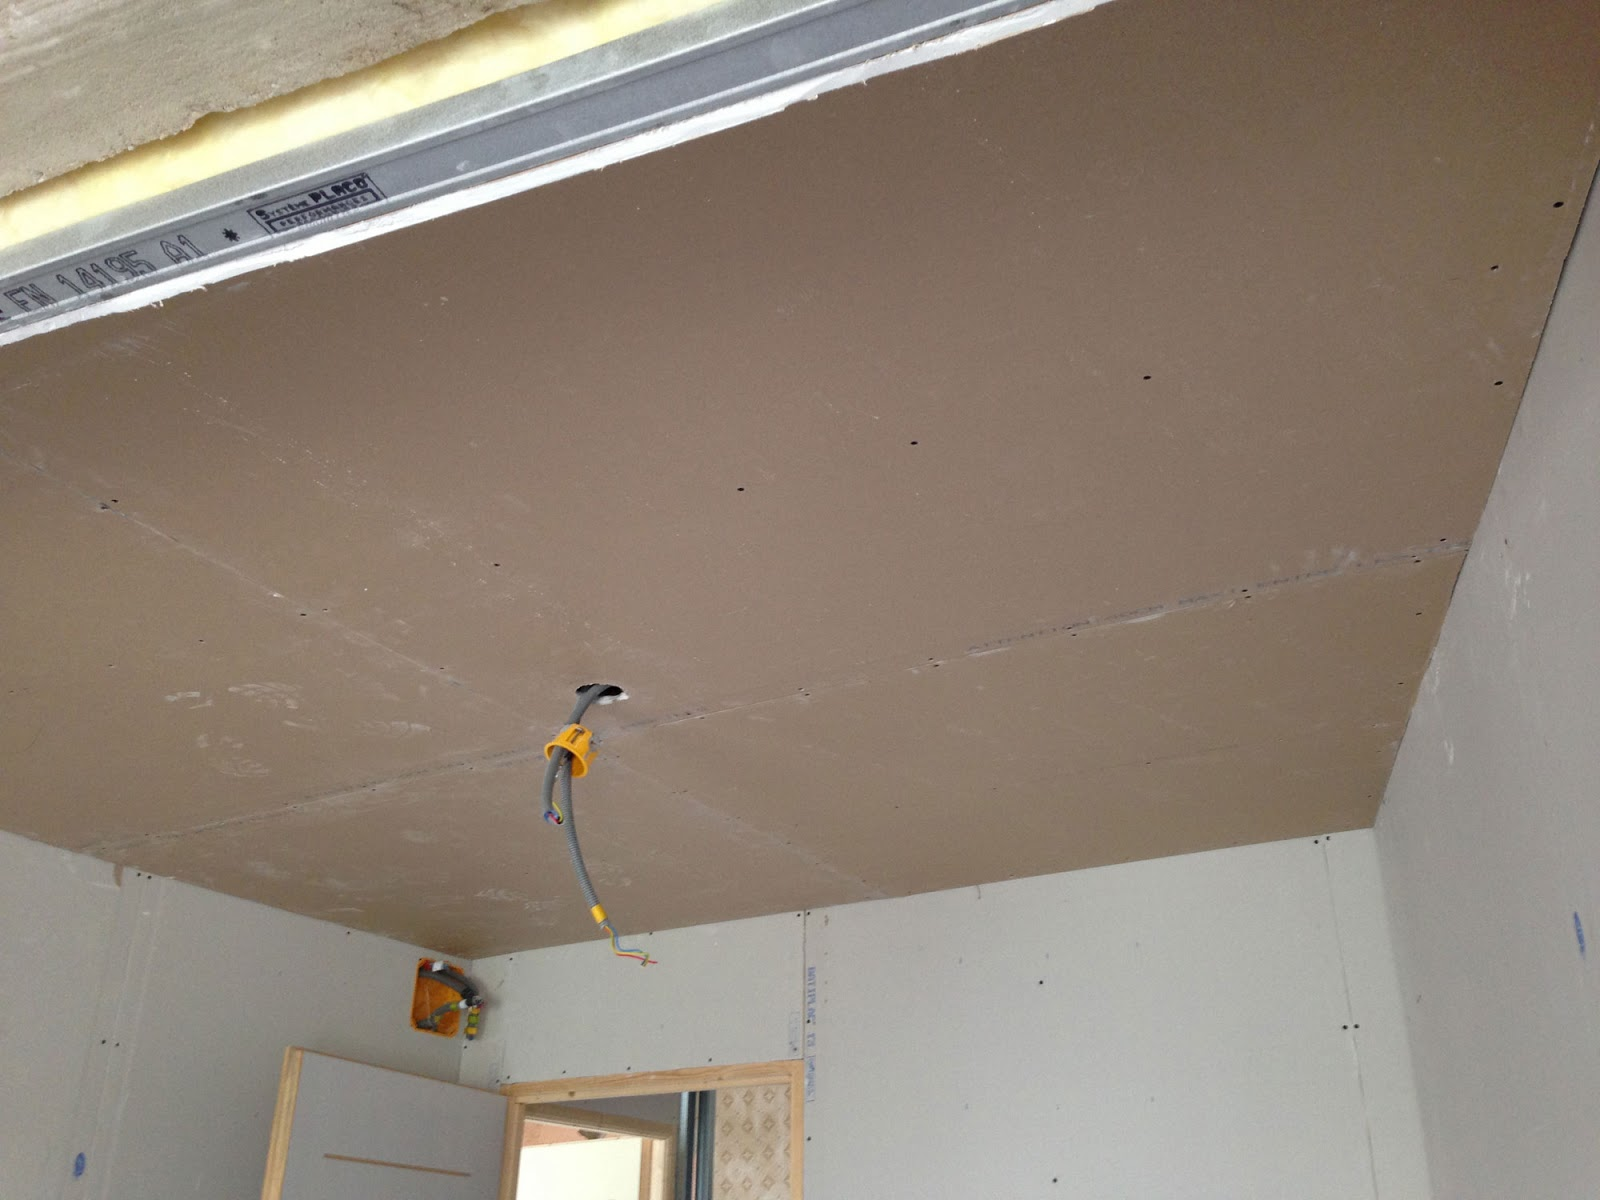 R novation de ma maison placo du faux plafond for Plafond combles placo